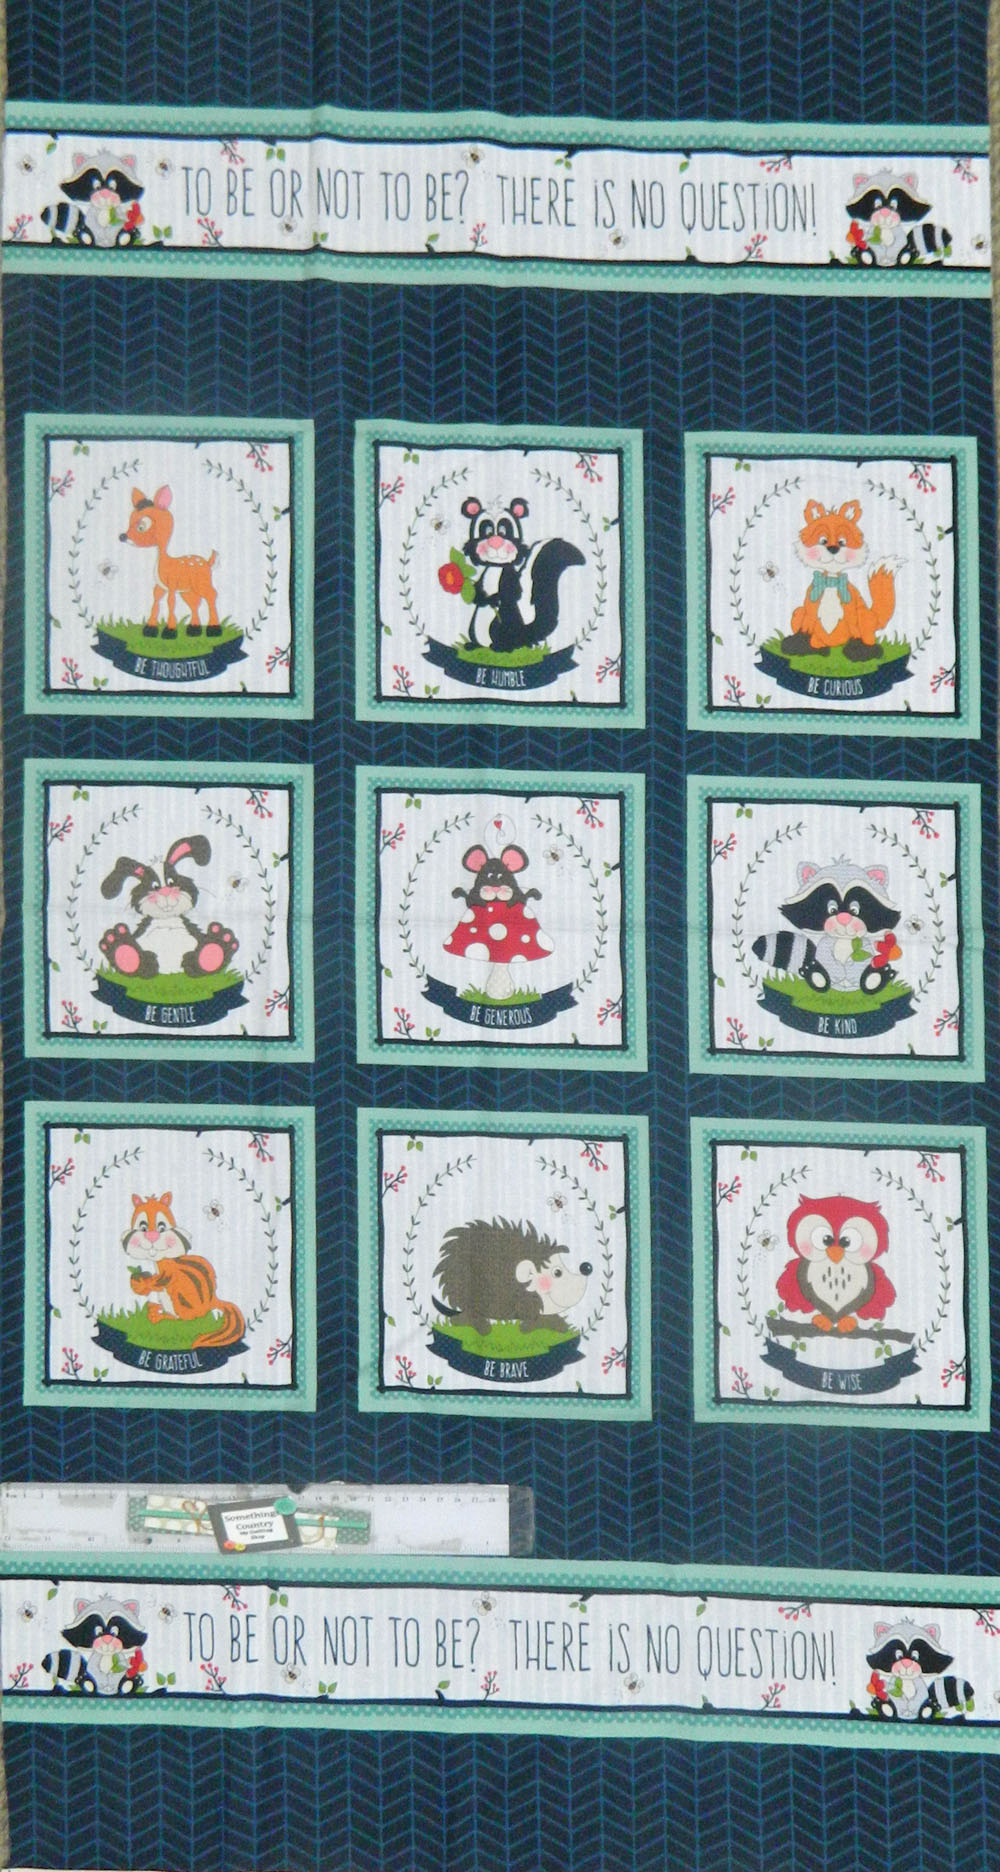 Patchwork Quilting Sewing Fabric TO BE GENTLE, GRATEFUL, BRAVE Material Panel 58x110cm New